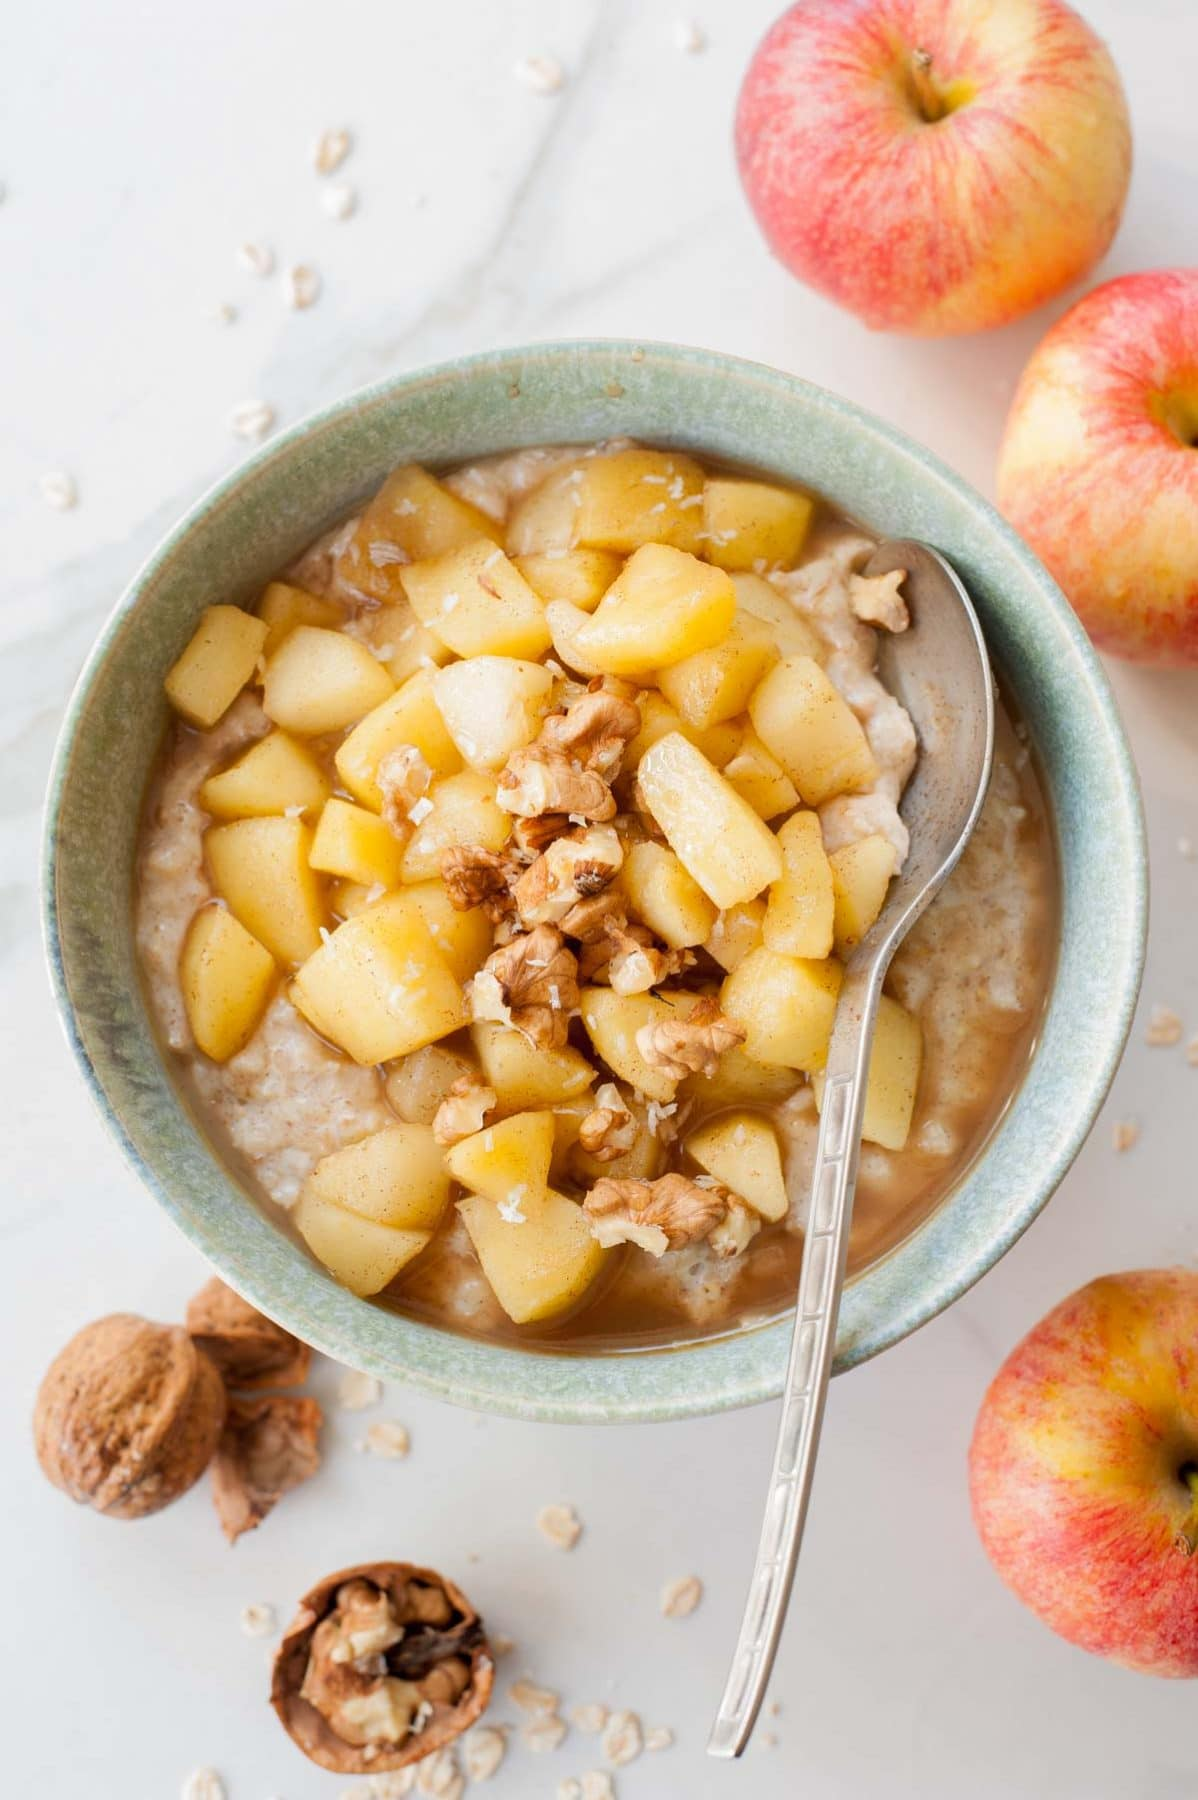 apple cinnamon oatmeal in a green bowl, walnuts and apples scattered around